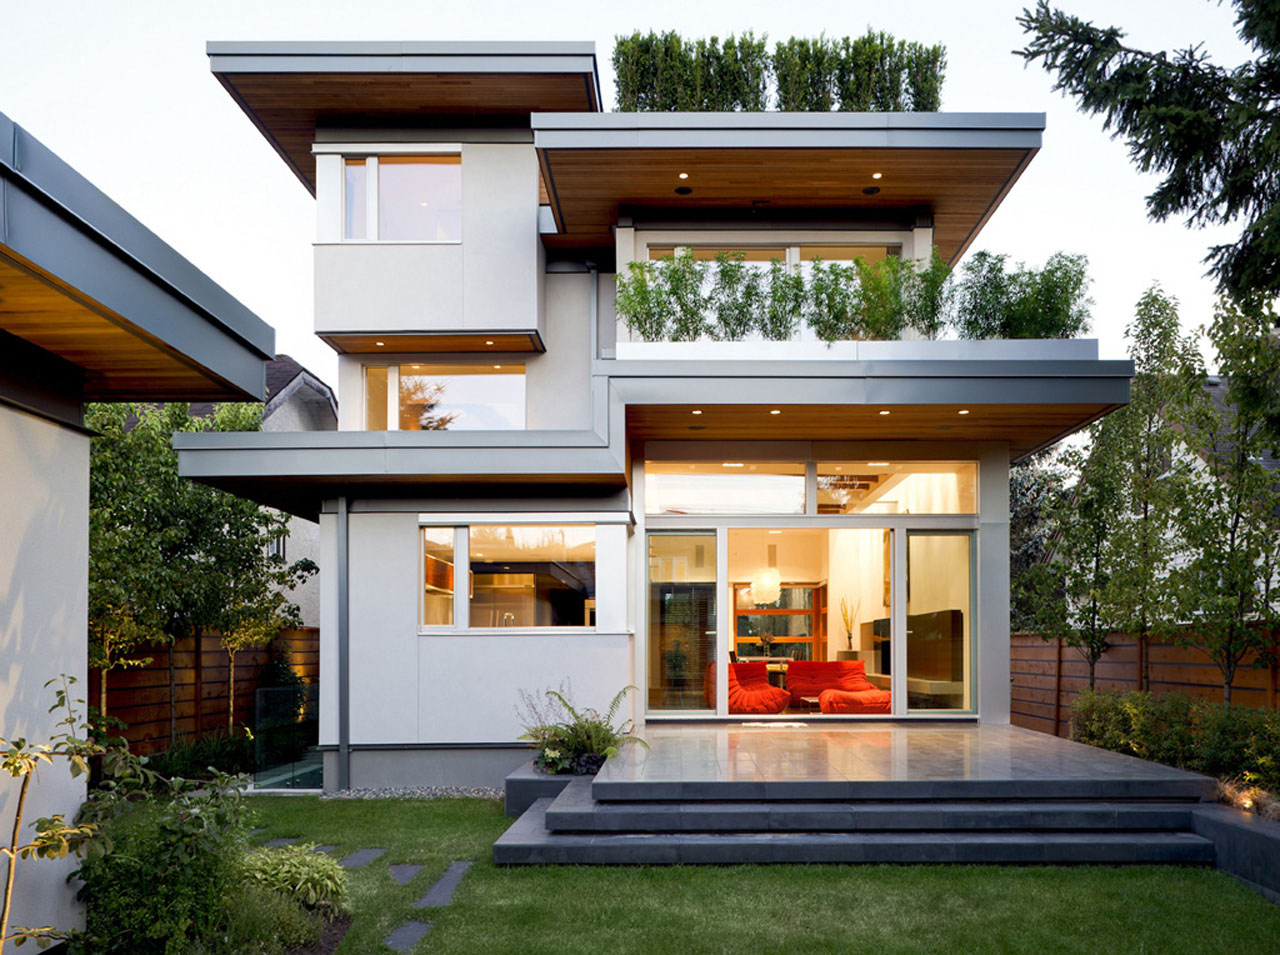 Sustainable Home Design In Vancouver | iDesignArch | Interior